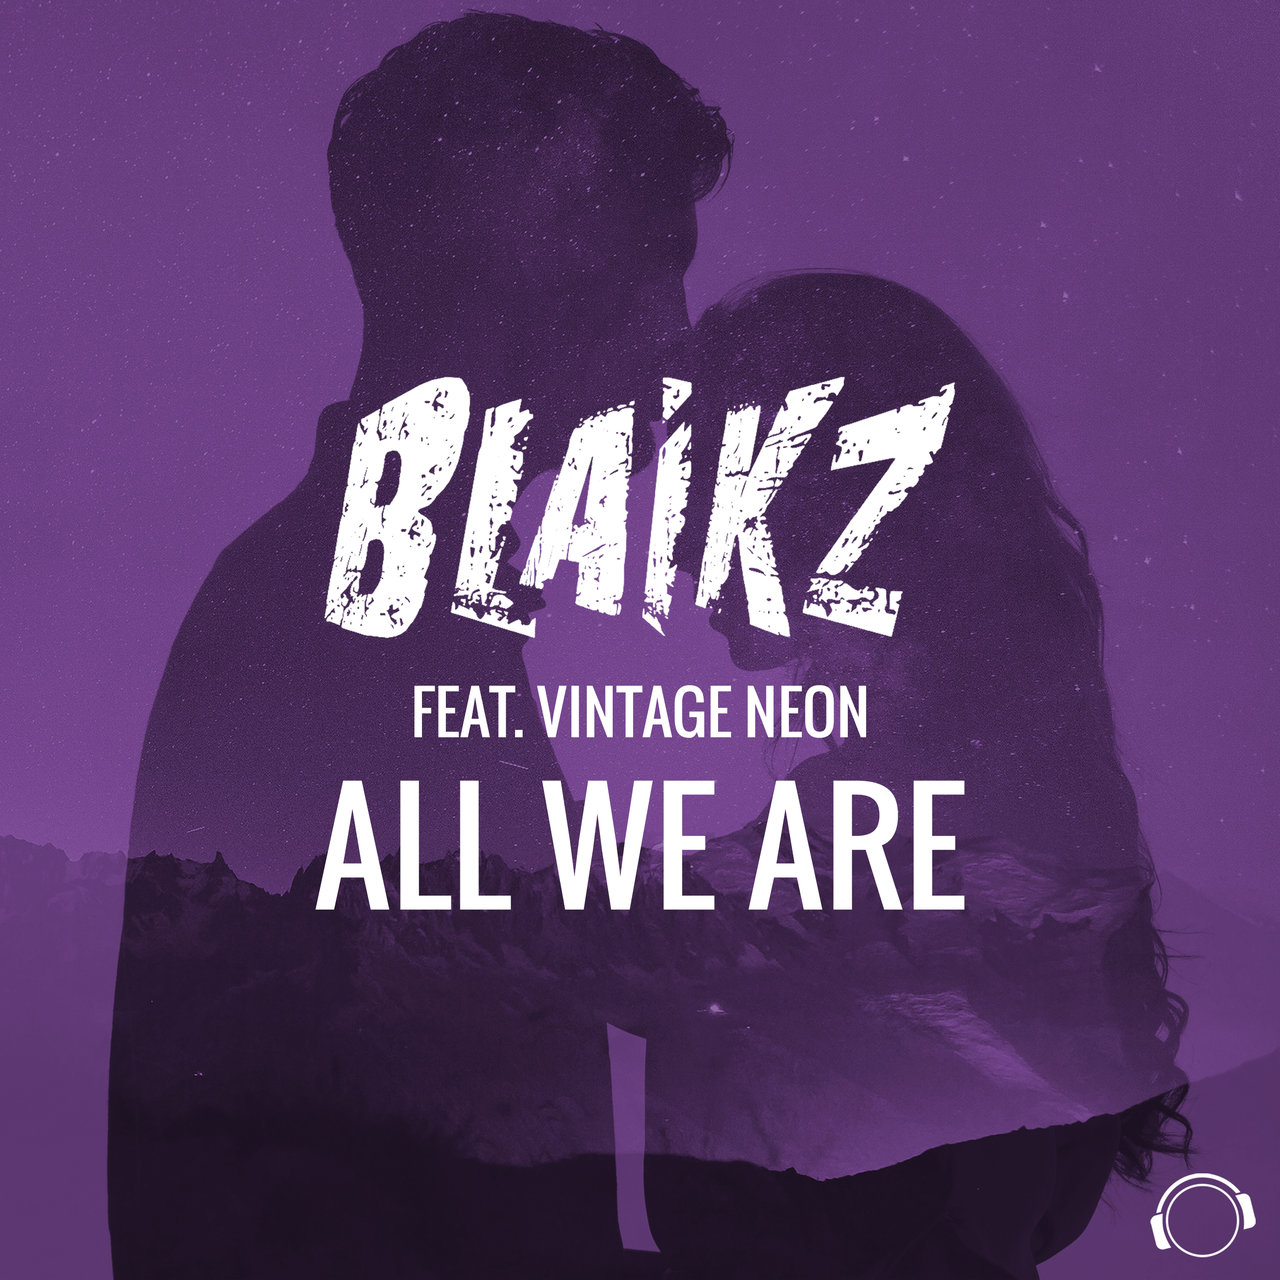 All We Are (feat. Vintage Neon)